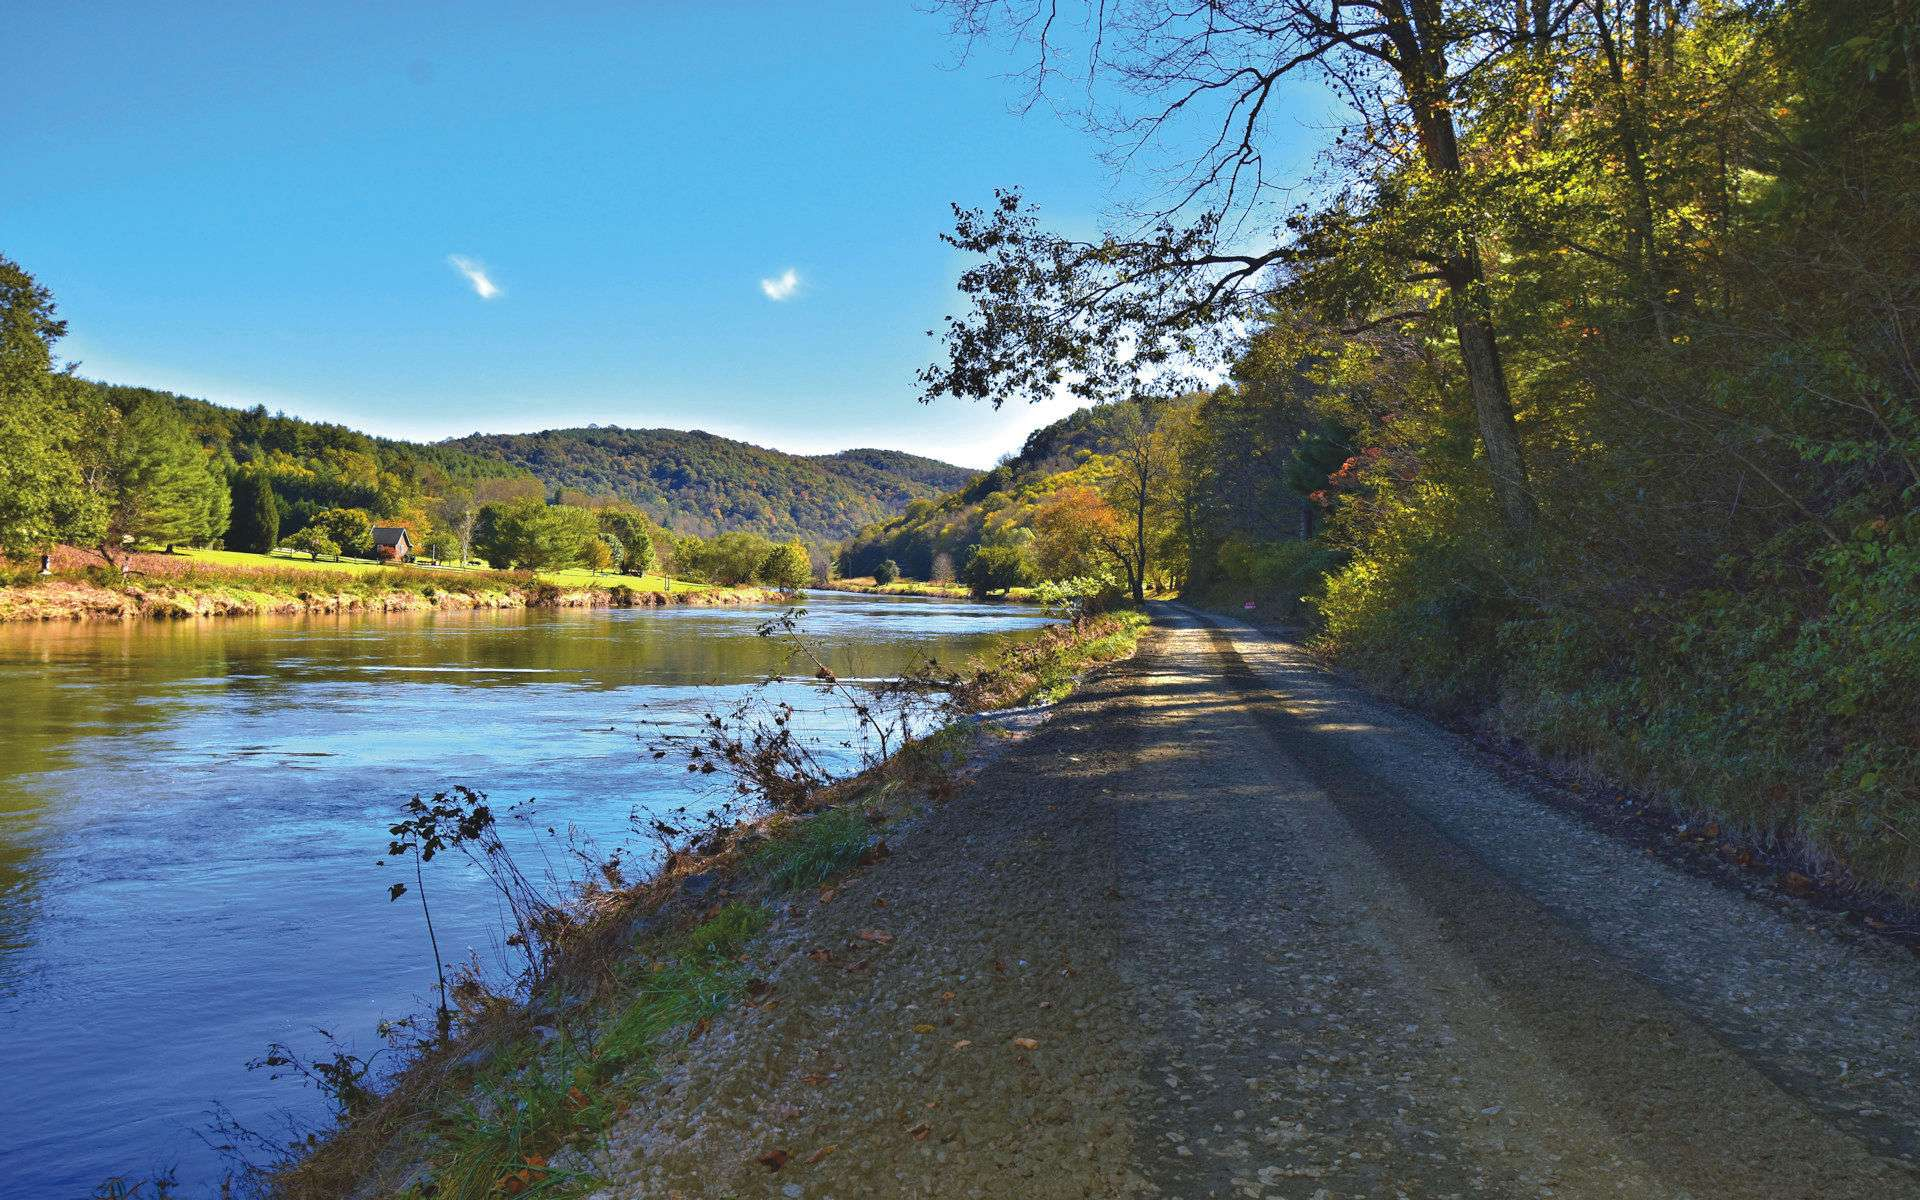 This beautiful riverfront acreage features over 700 feet of frontage on the South Fork of the New River.